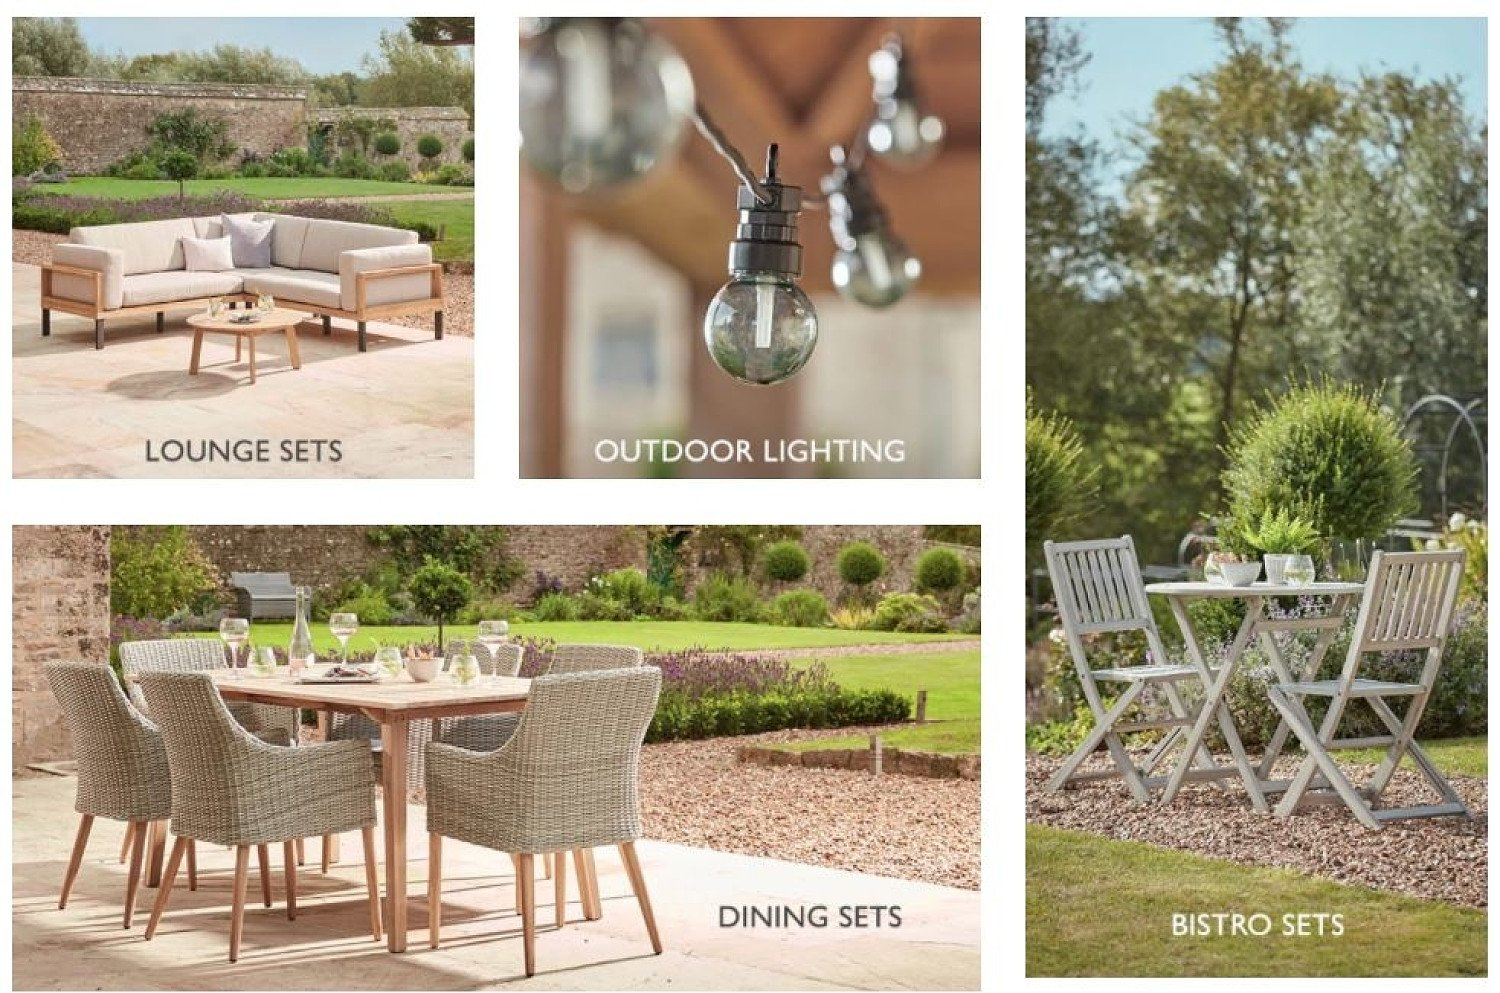 Extend your living with outdoor furniture and accessories full of interior style!